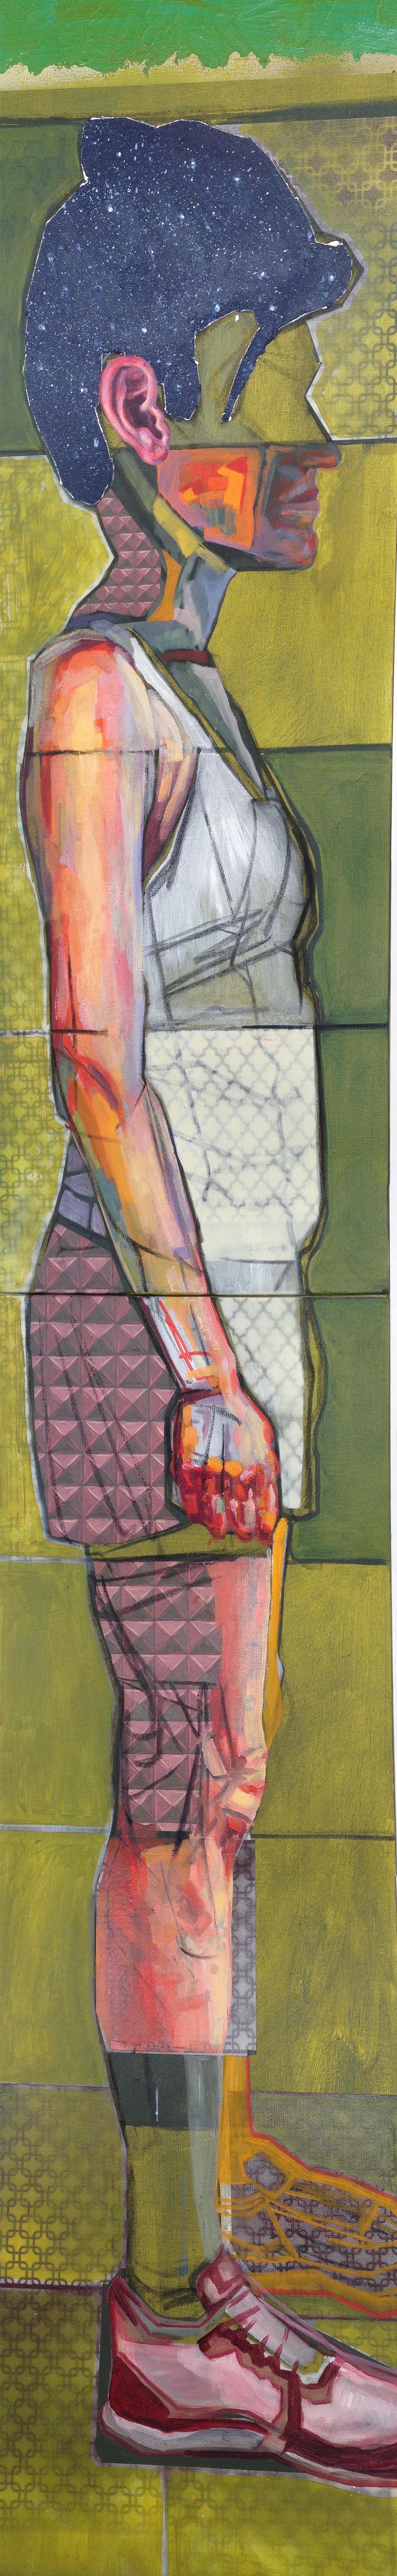 No Wading, In Profile  (diptych) | oil, acrylic, aerosol, charcoal on canvas | 6' x 1' | (SOLD)